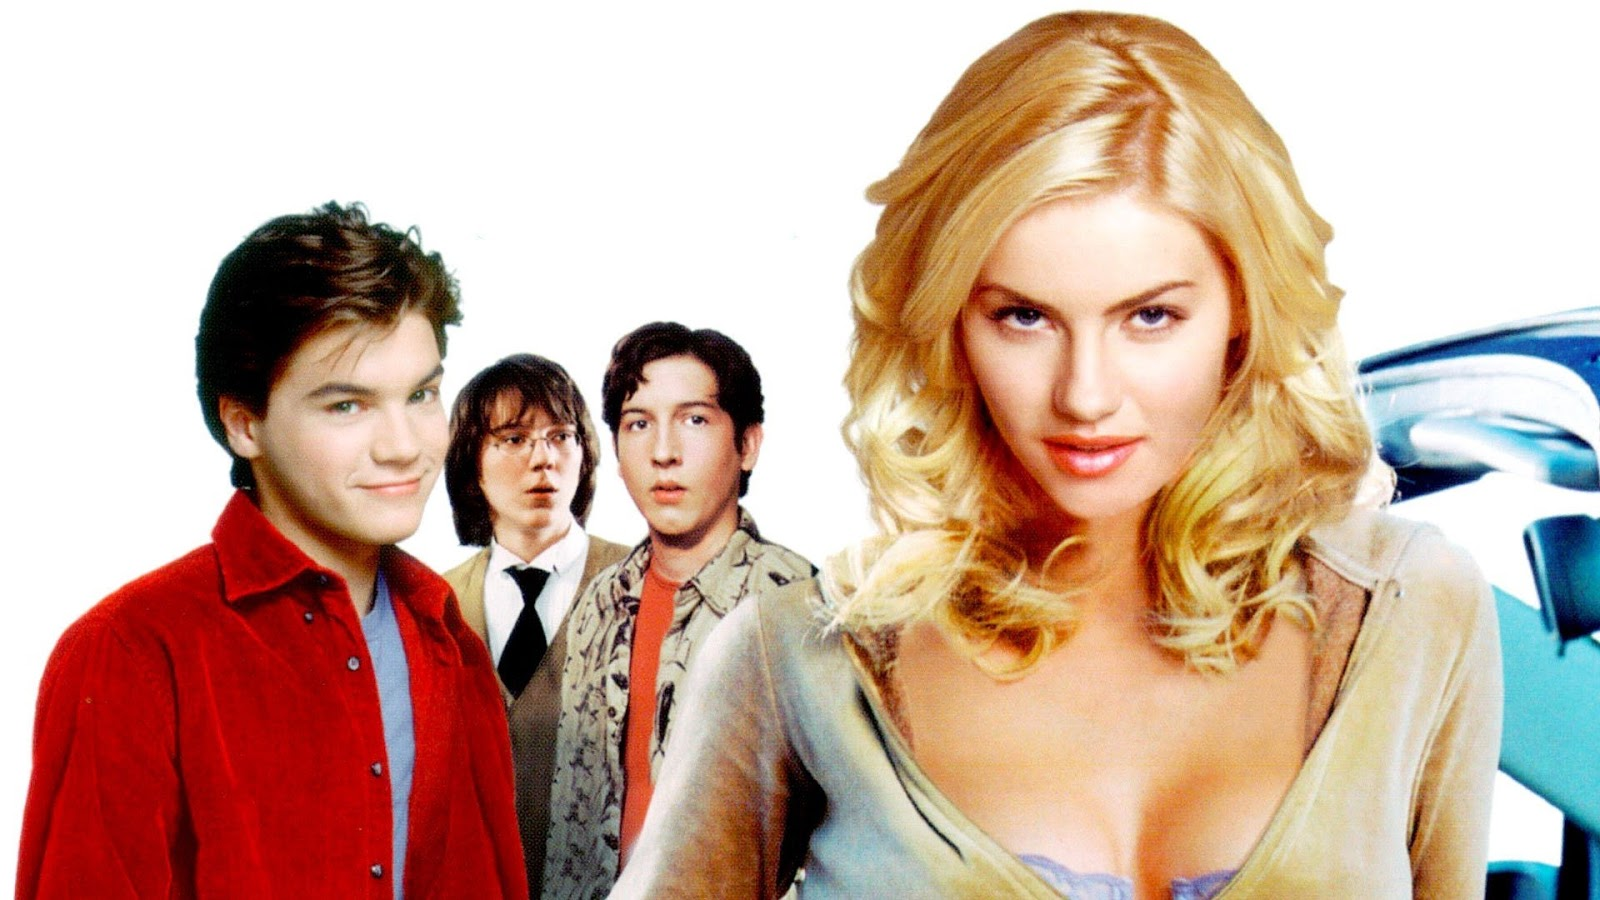 The Girl Next Door  Hollywood Movie Free Download Hd